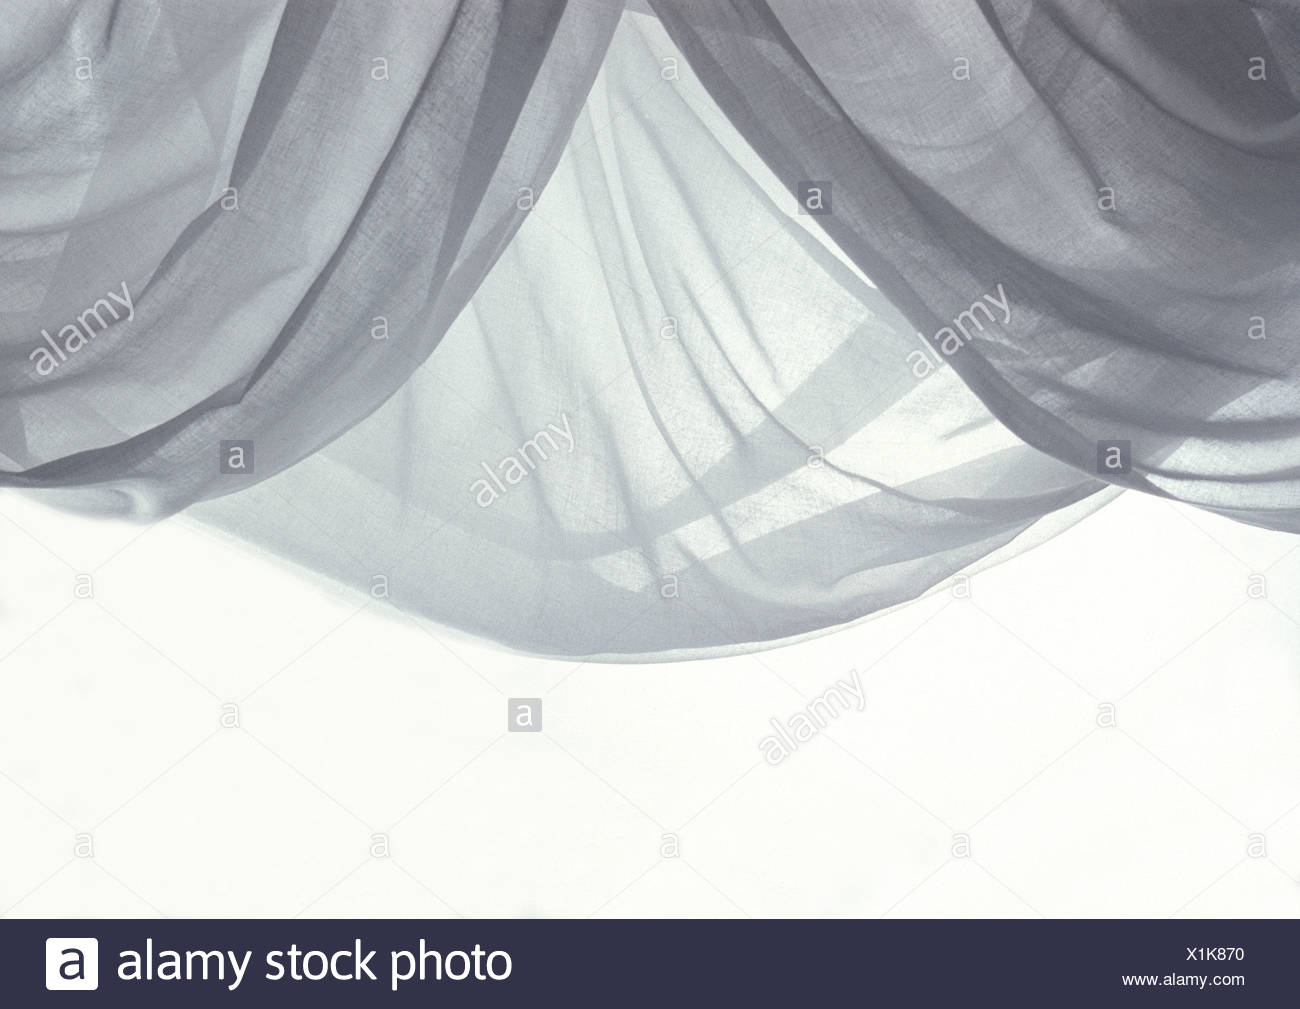 What is the name of type of translucent fabric?